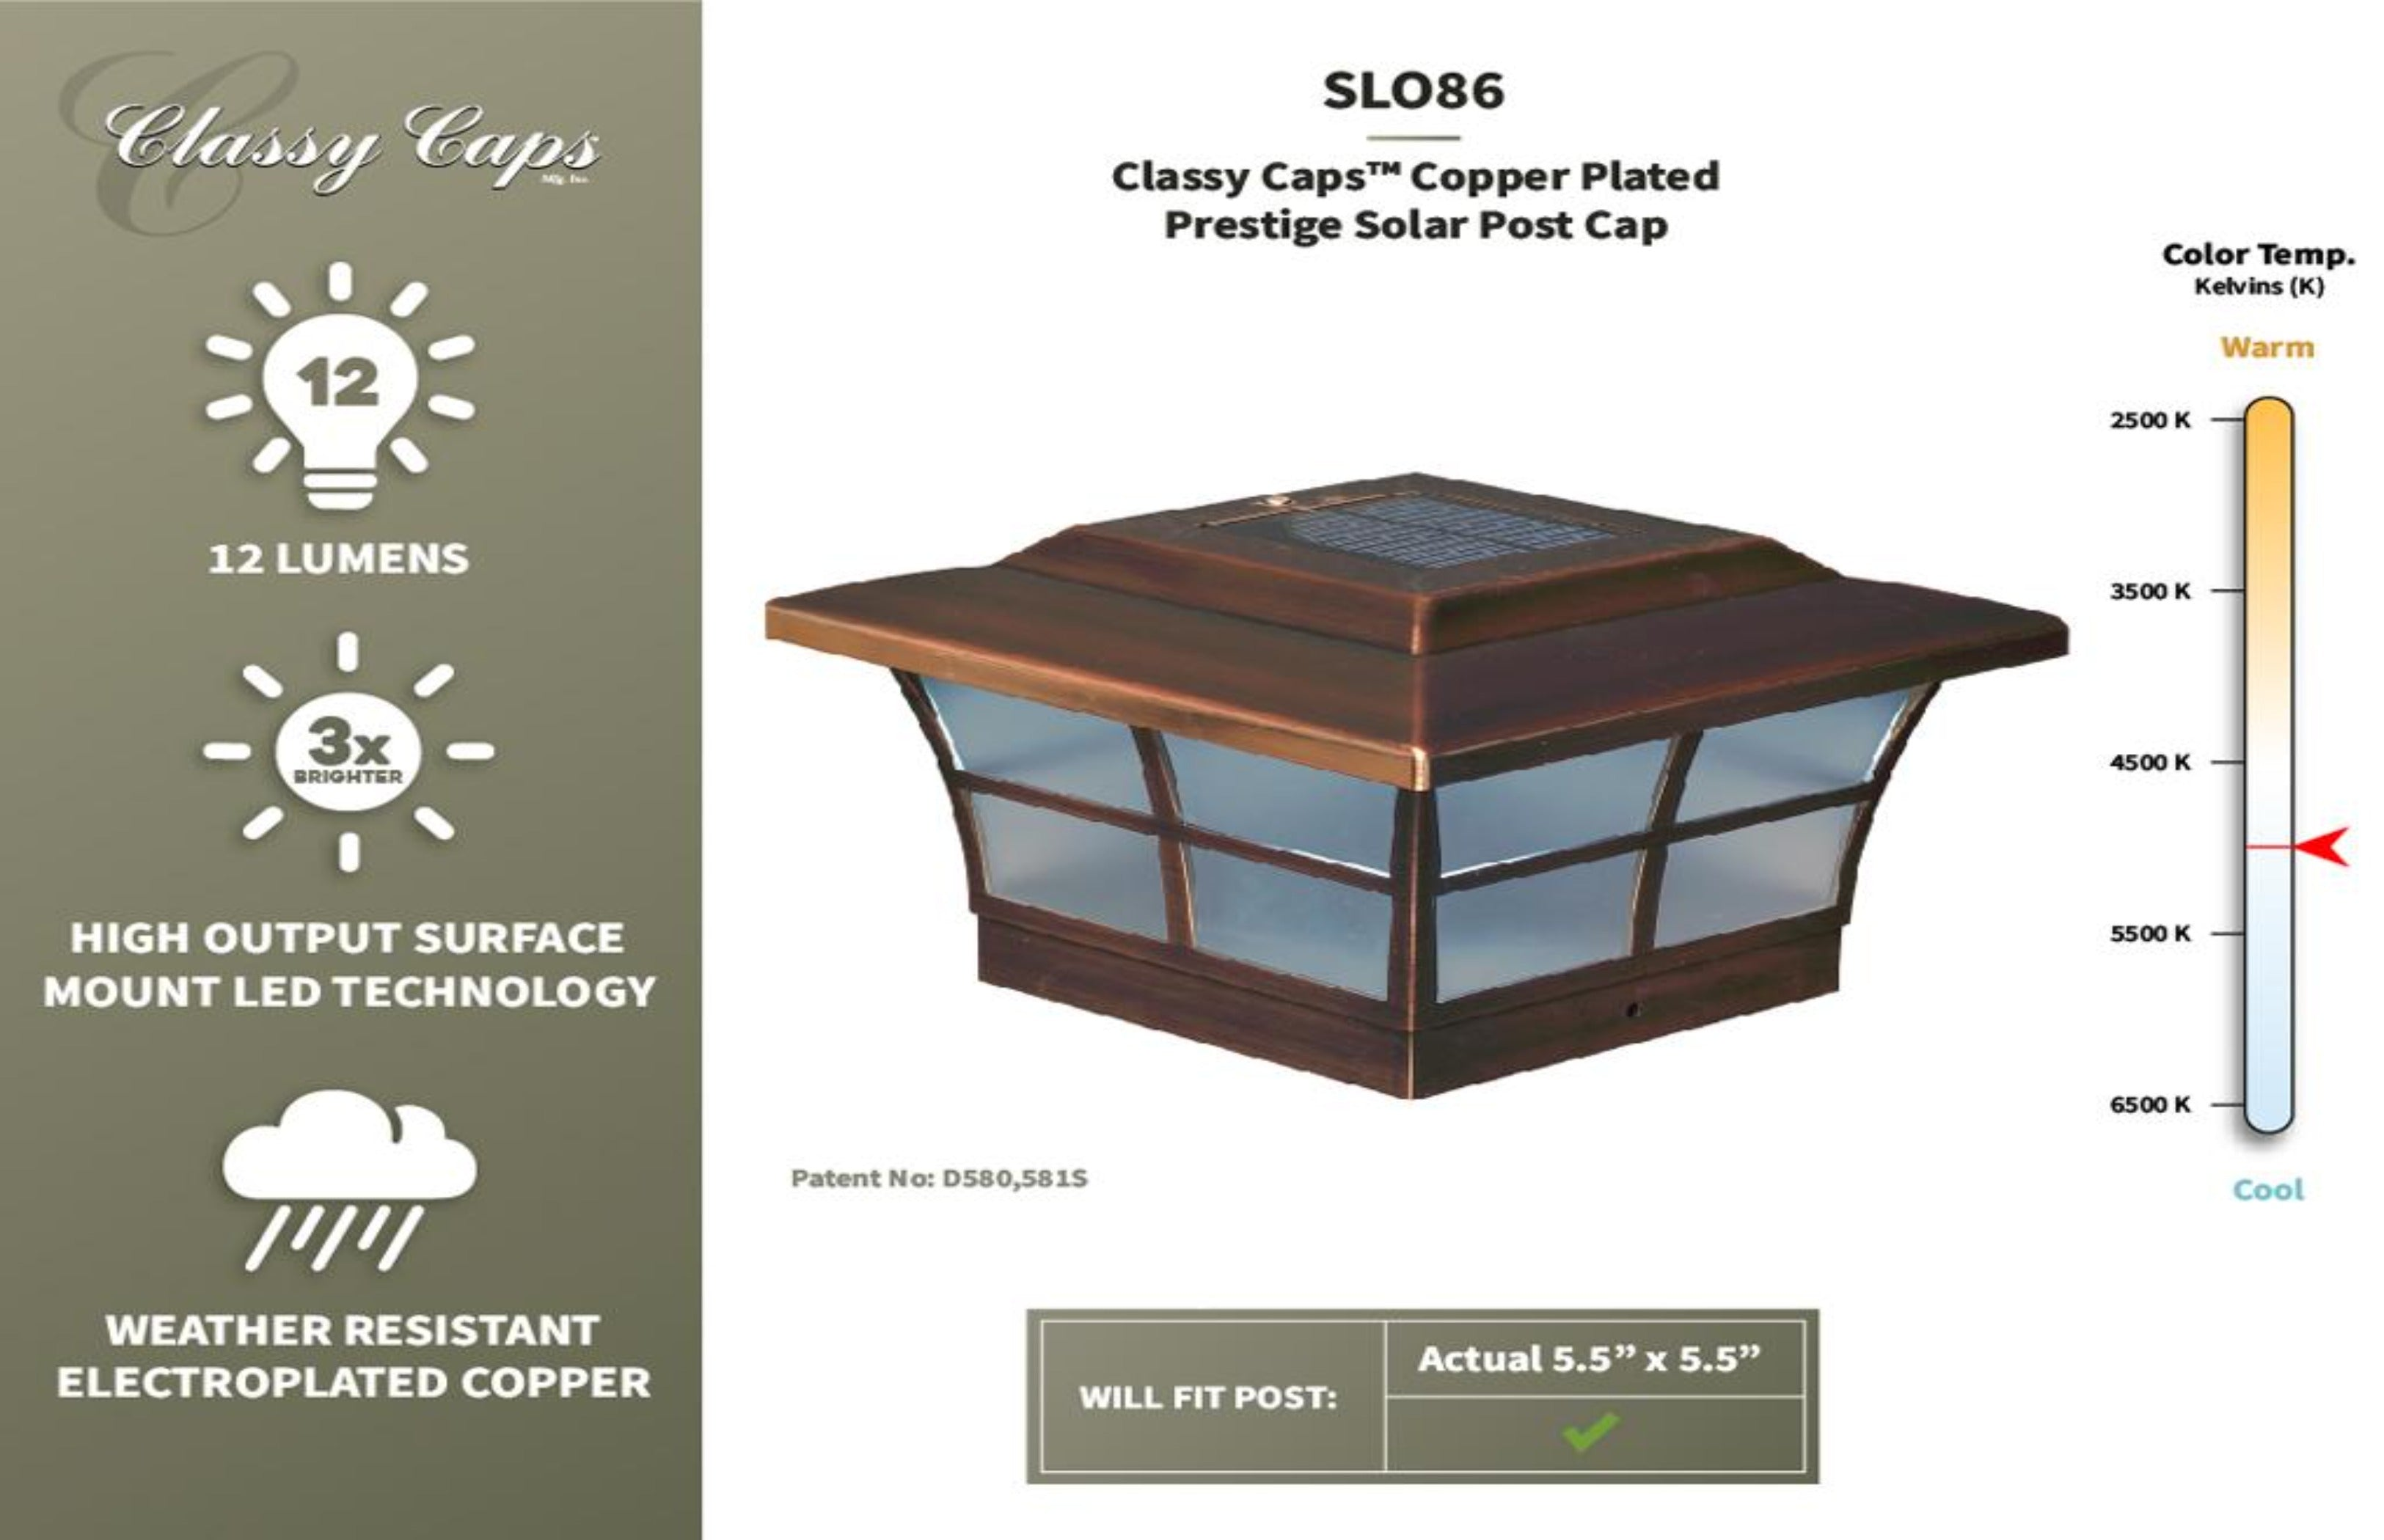 COPPER PLATED PRESTIGE SOLAR POST CAP